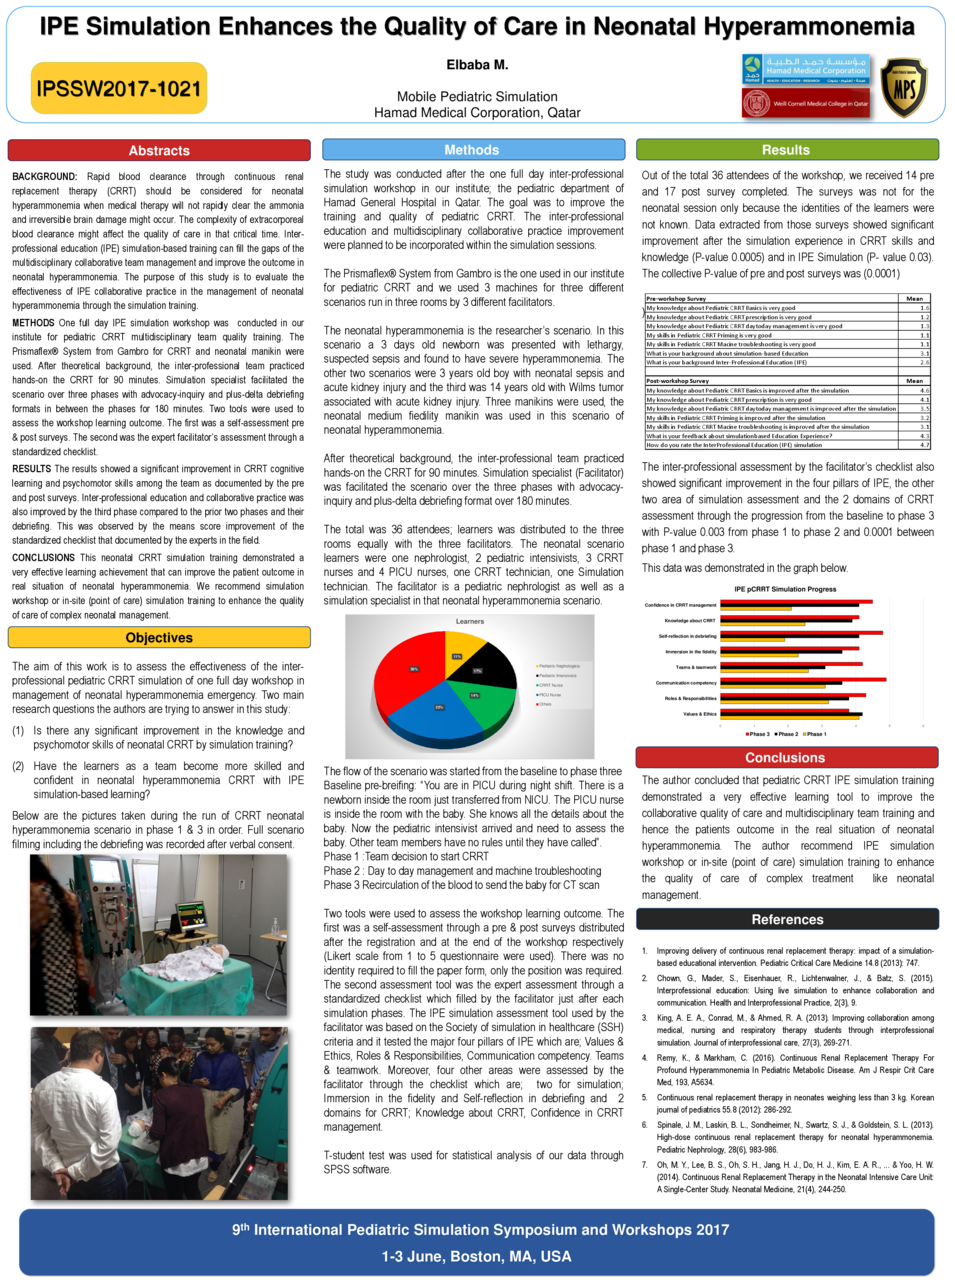 Preview 153293503c9111e7b8ee6ff869d3d30c po 06 5 ipssw2017 poster neonatal hyperammonemia layout